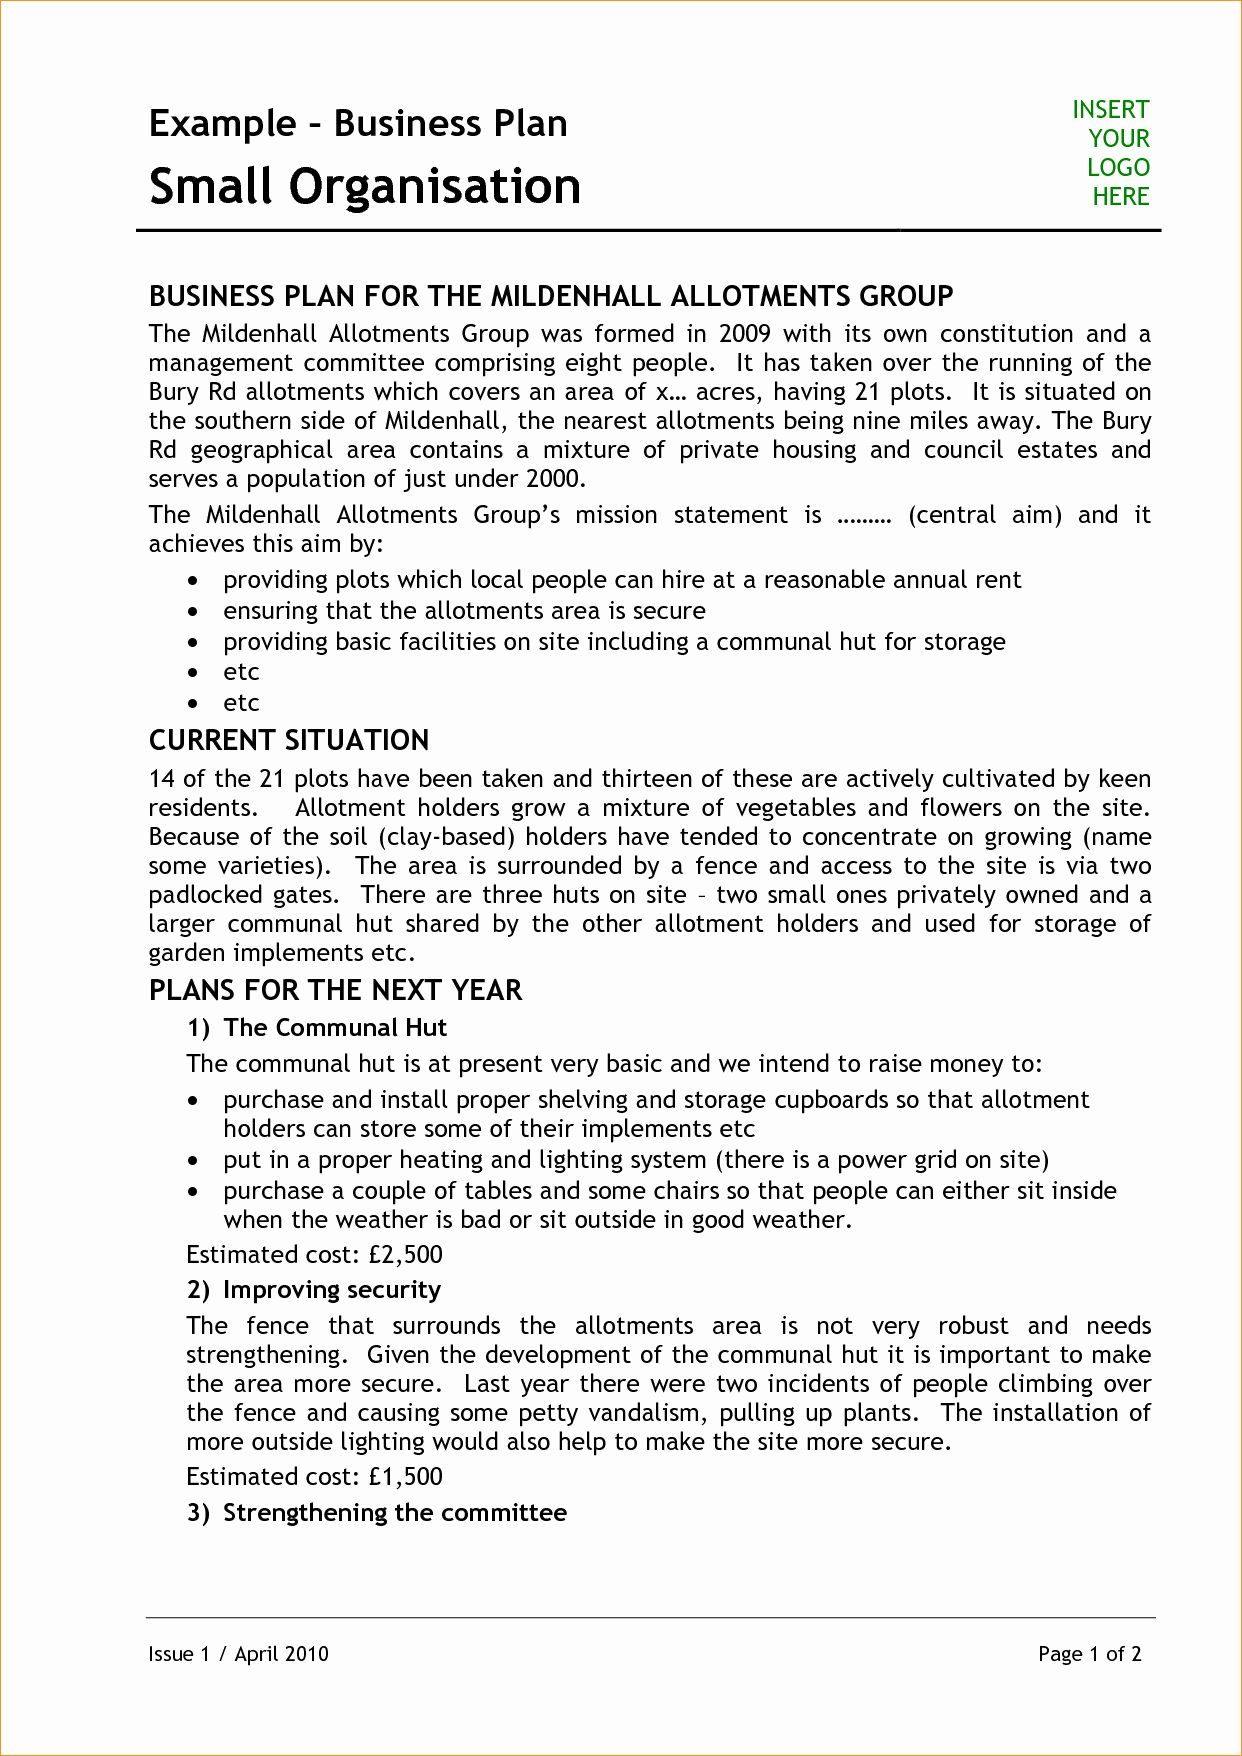 Small Business Proposal Template Fresh Small Business Proposal Template Busines Business Proposal Template Simple Business Plan Template Business Plan Template